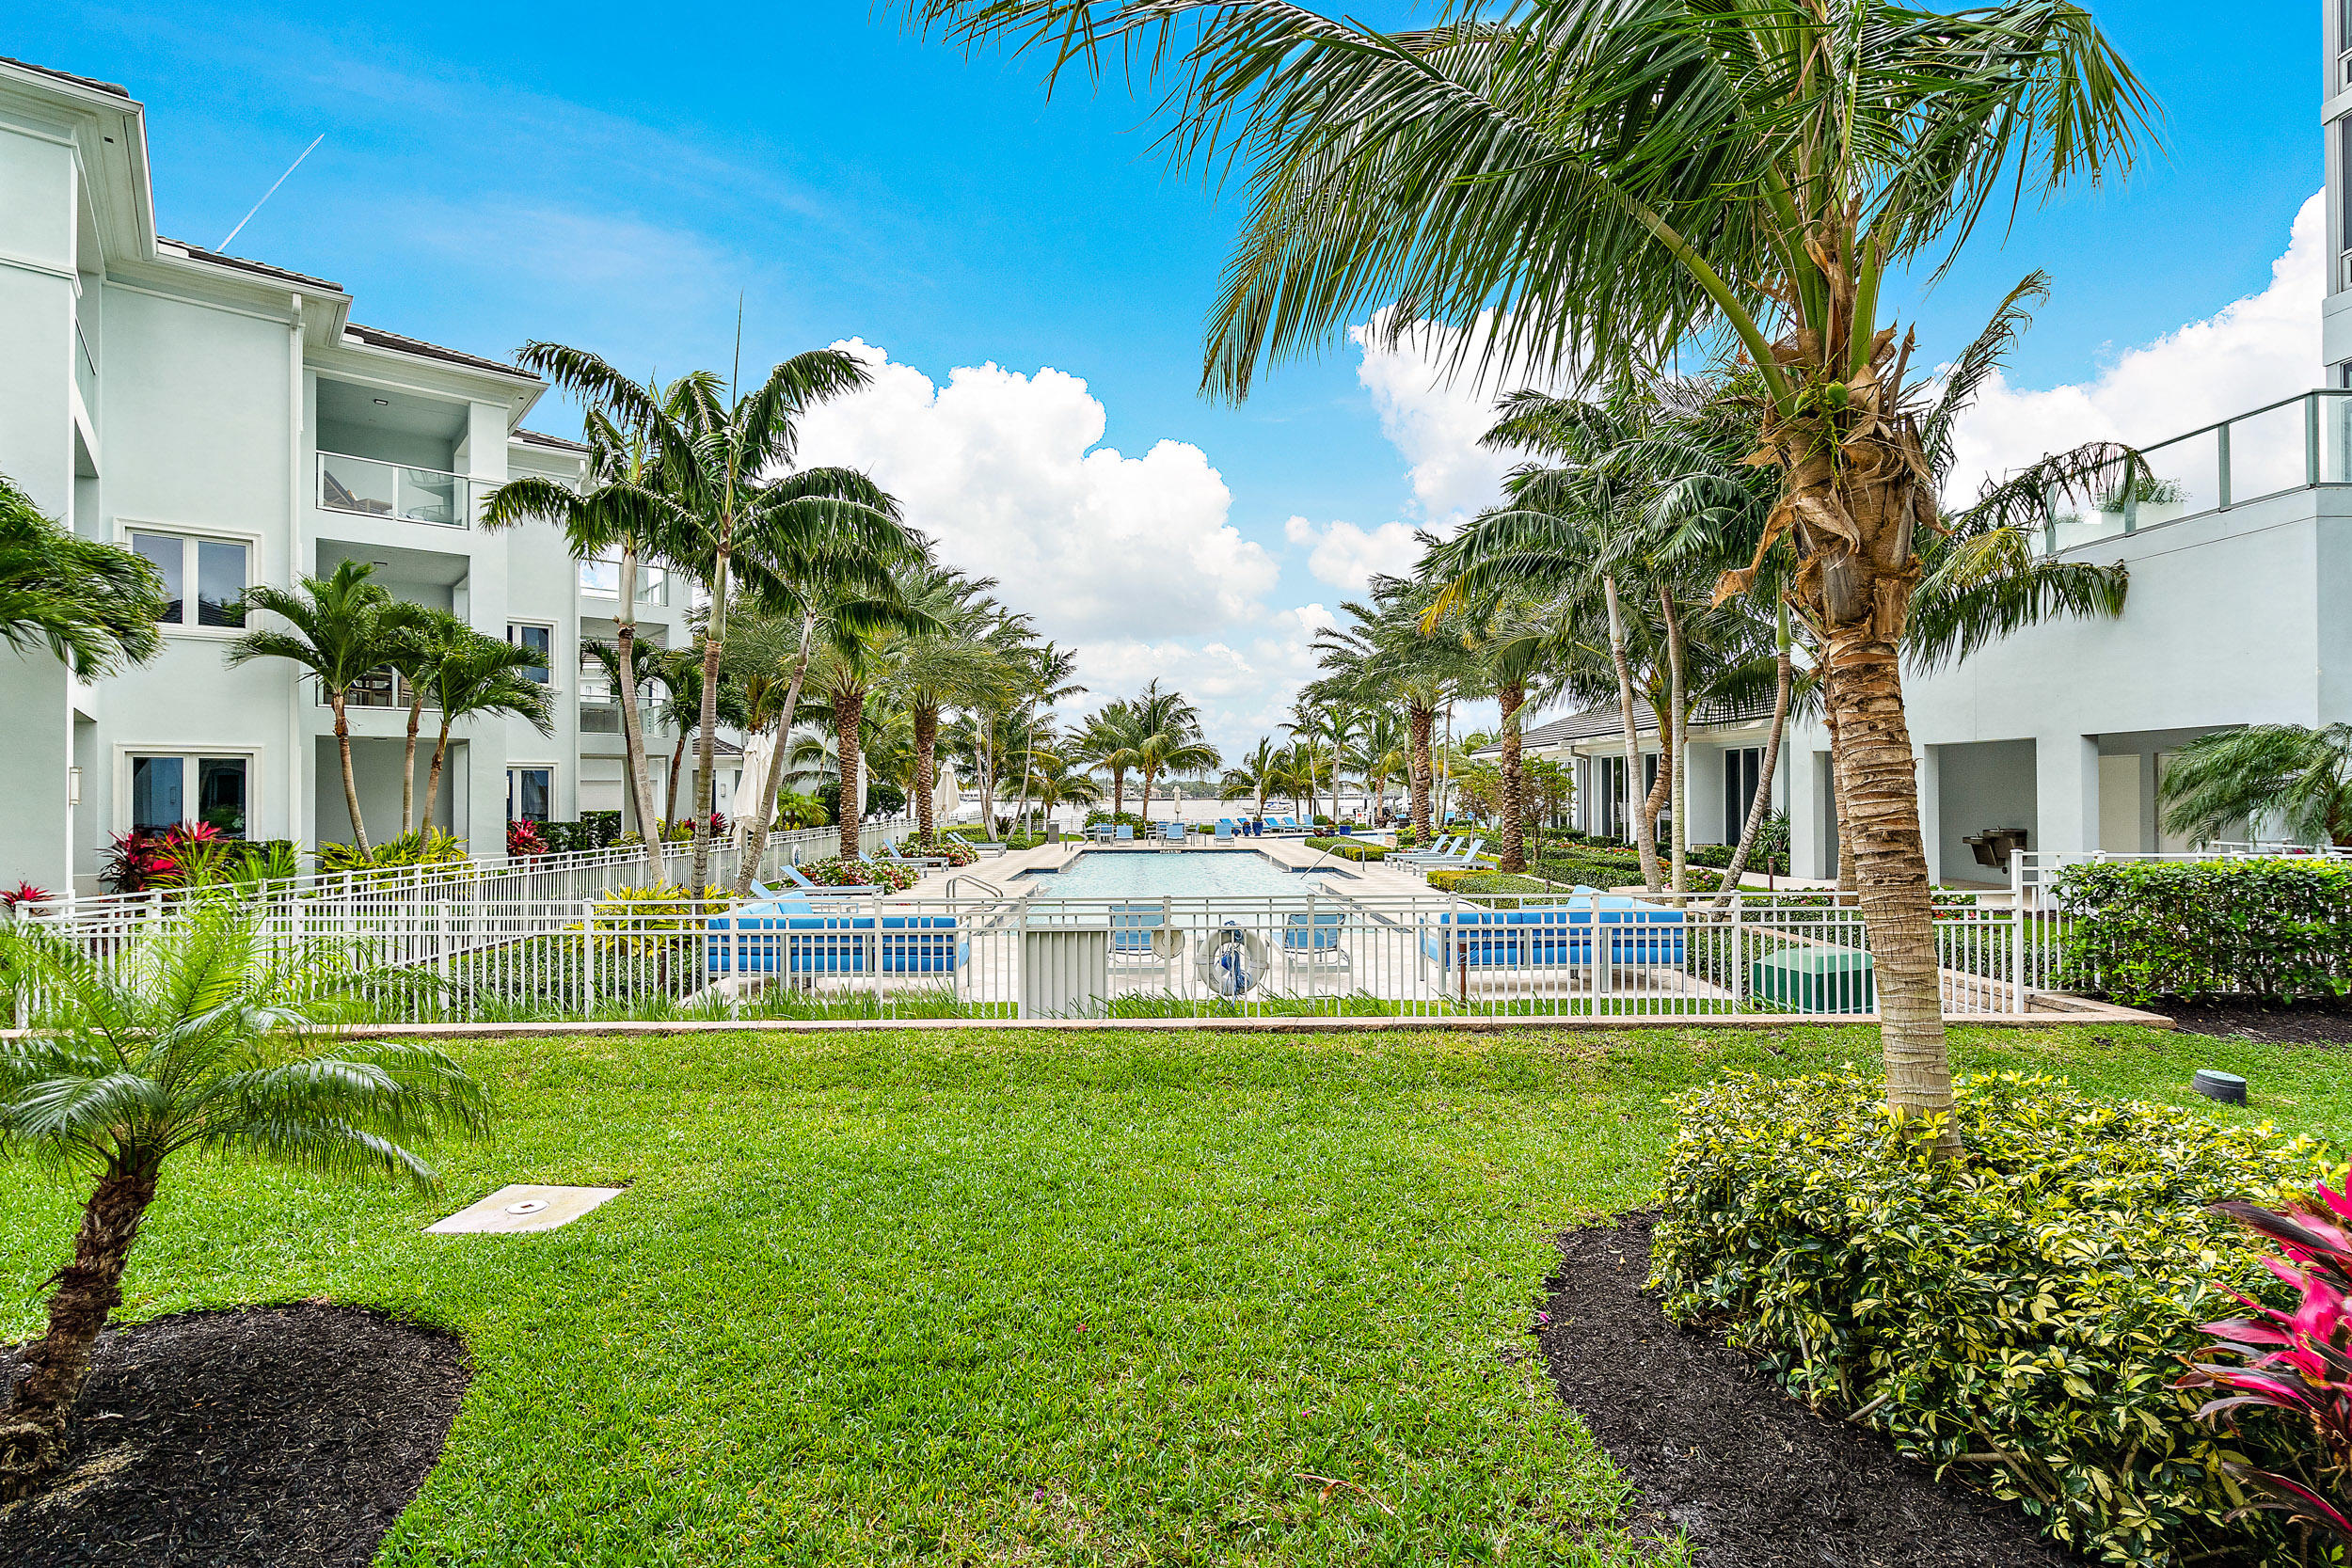 118  Water Club Court  For Sale 10704029, FL